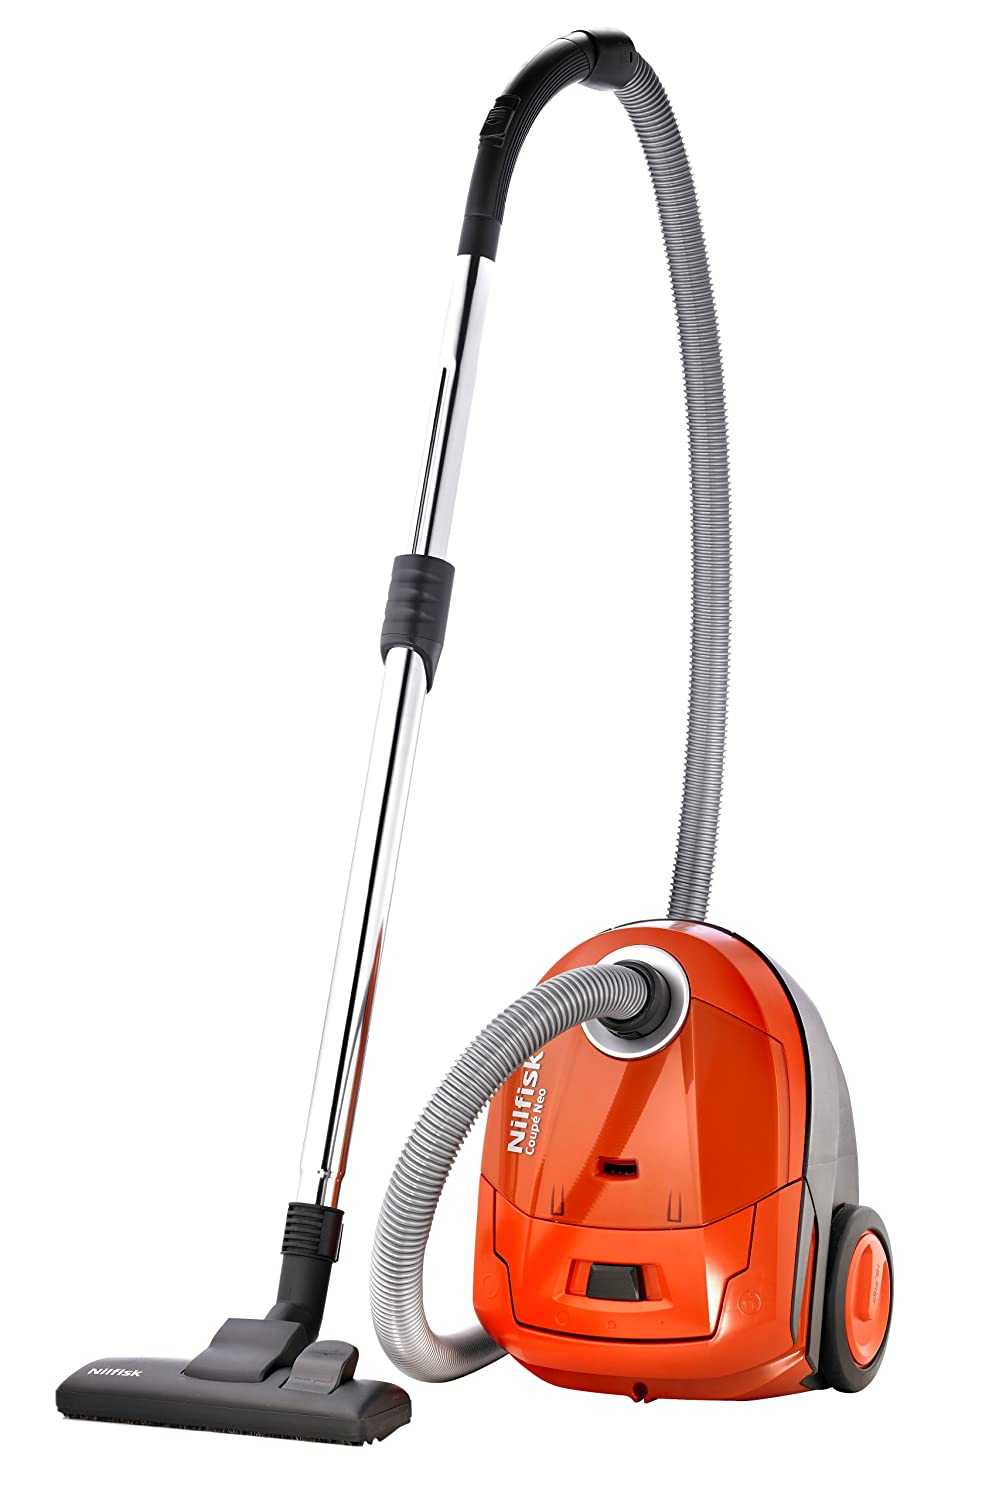 Nilfisk Coupé Neo Orange, 480 W, 2000 W, 220-240 V, 50/60 Hz, 3 L, Naranja: Amazon.es: Hogar